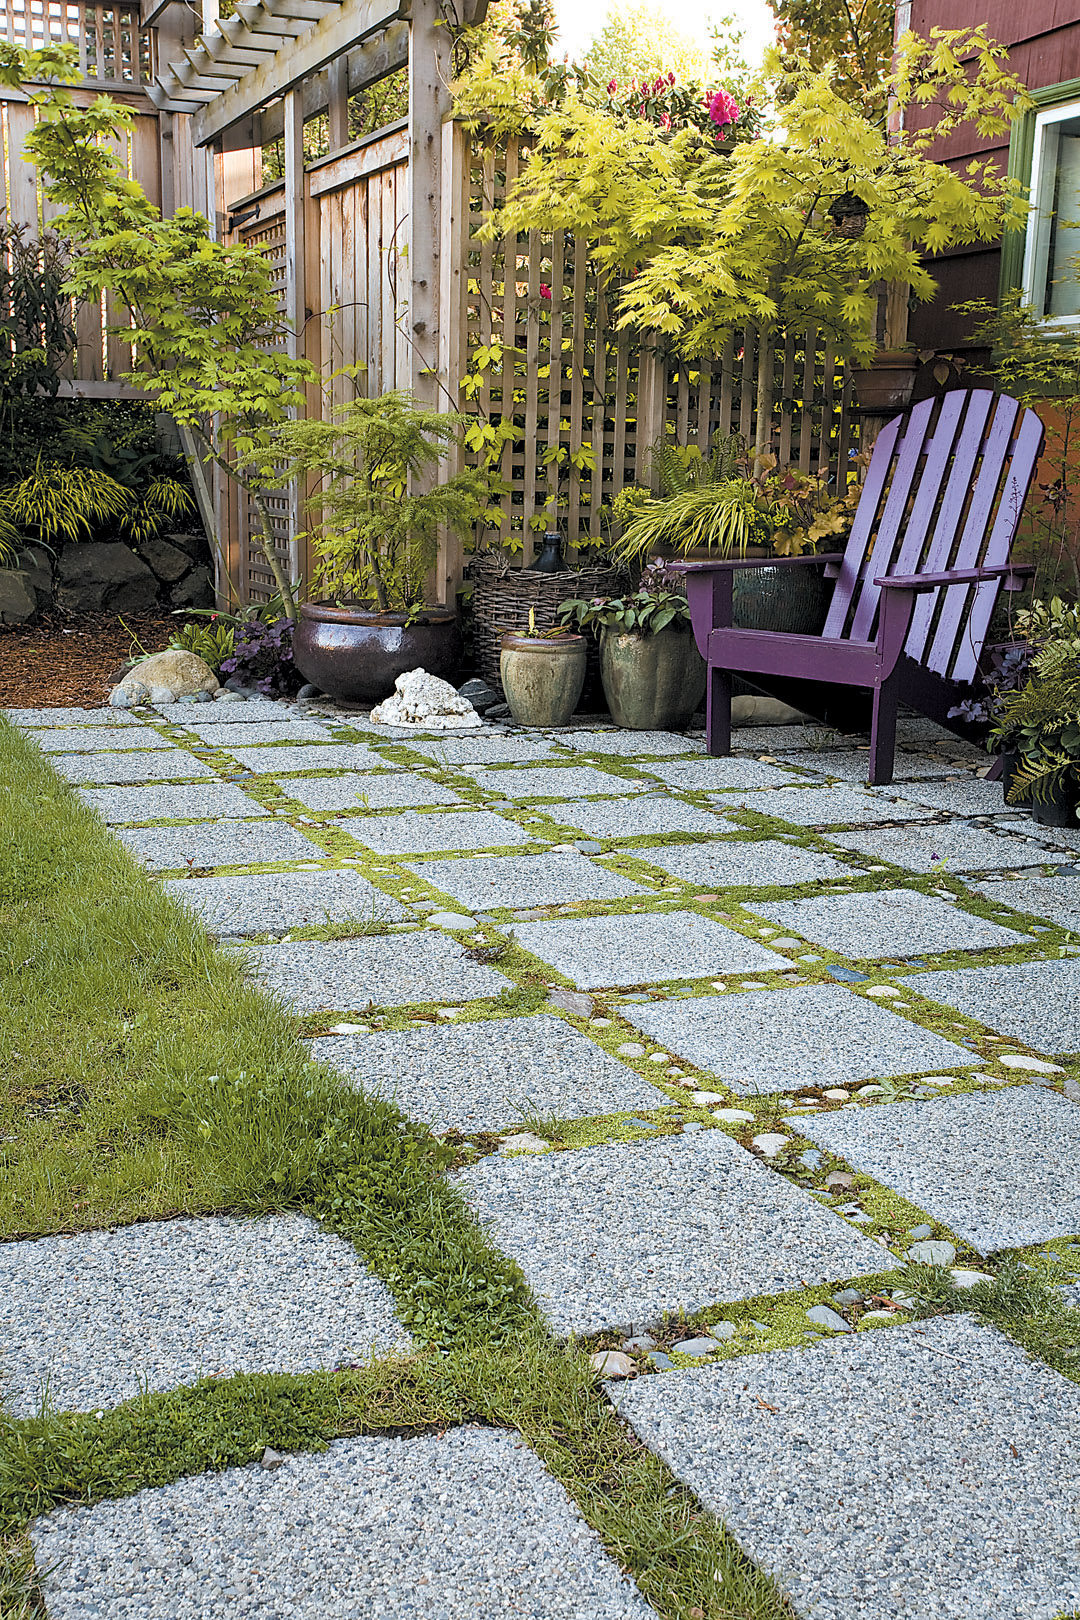 Small back yard with permeable patio of stone paves designed for groundwater retention; Jennifer Carlson garden